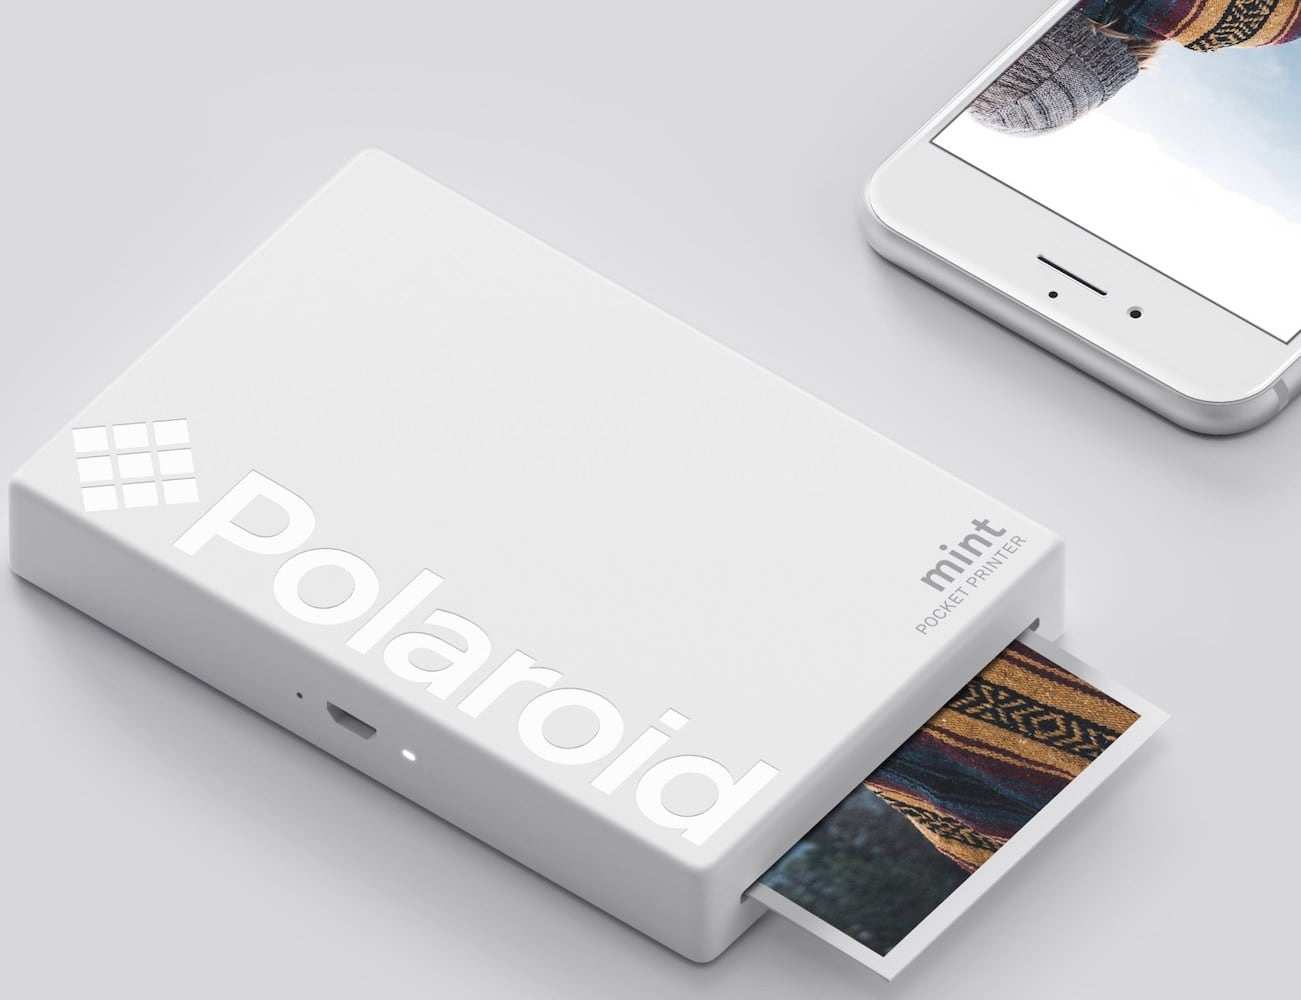 Polaroid Mint Instant Digital Pocket Printer prints straight from your smartphone